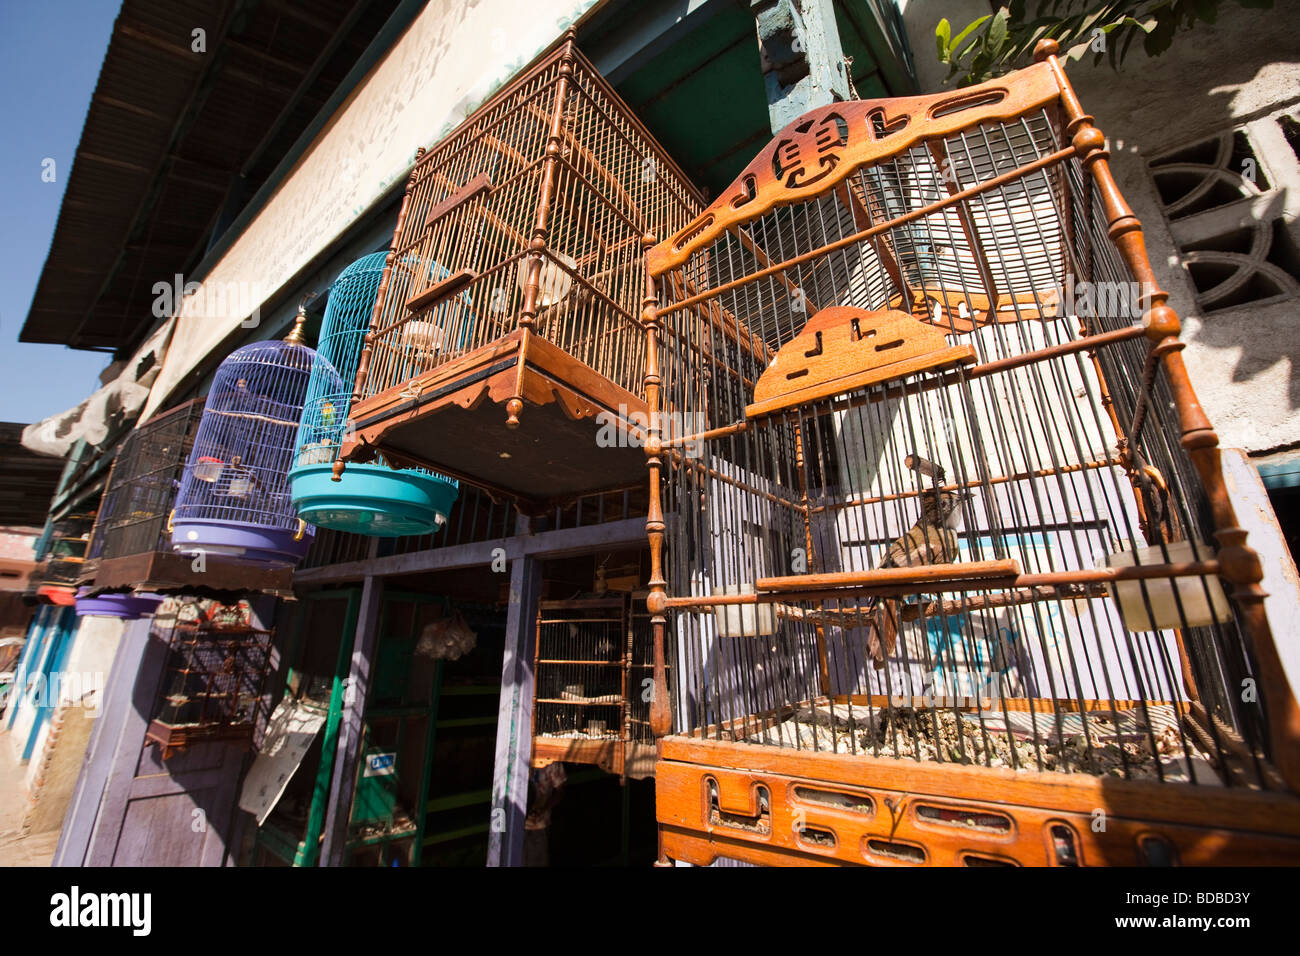 Indonesia Sulawesi Barru caged songbirds for sale outside shop - Stock Image